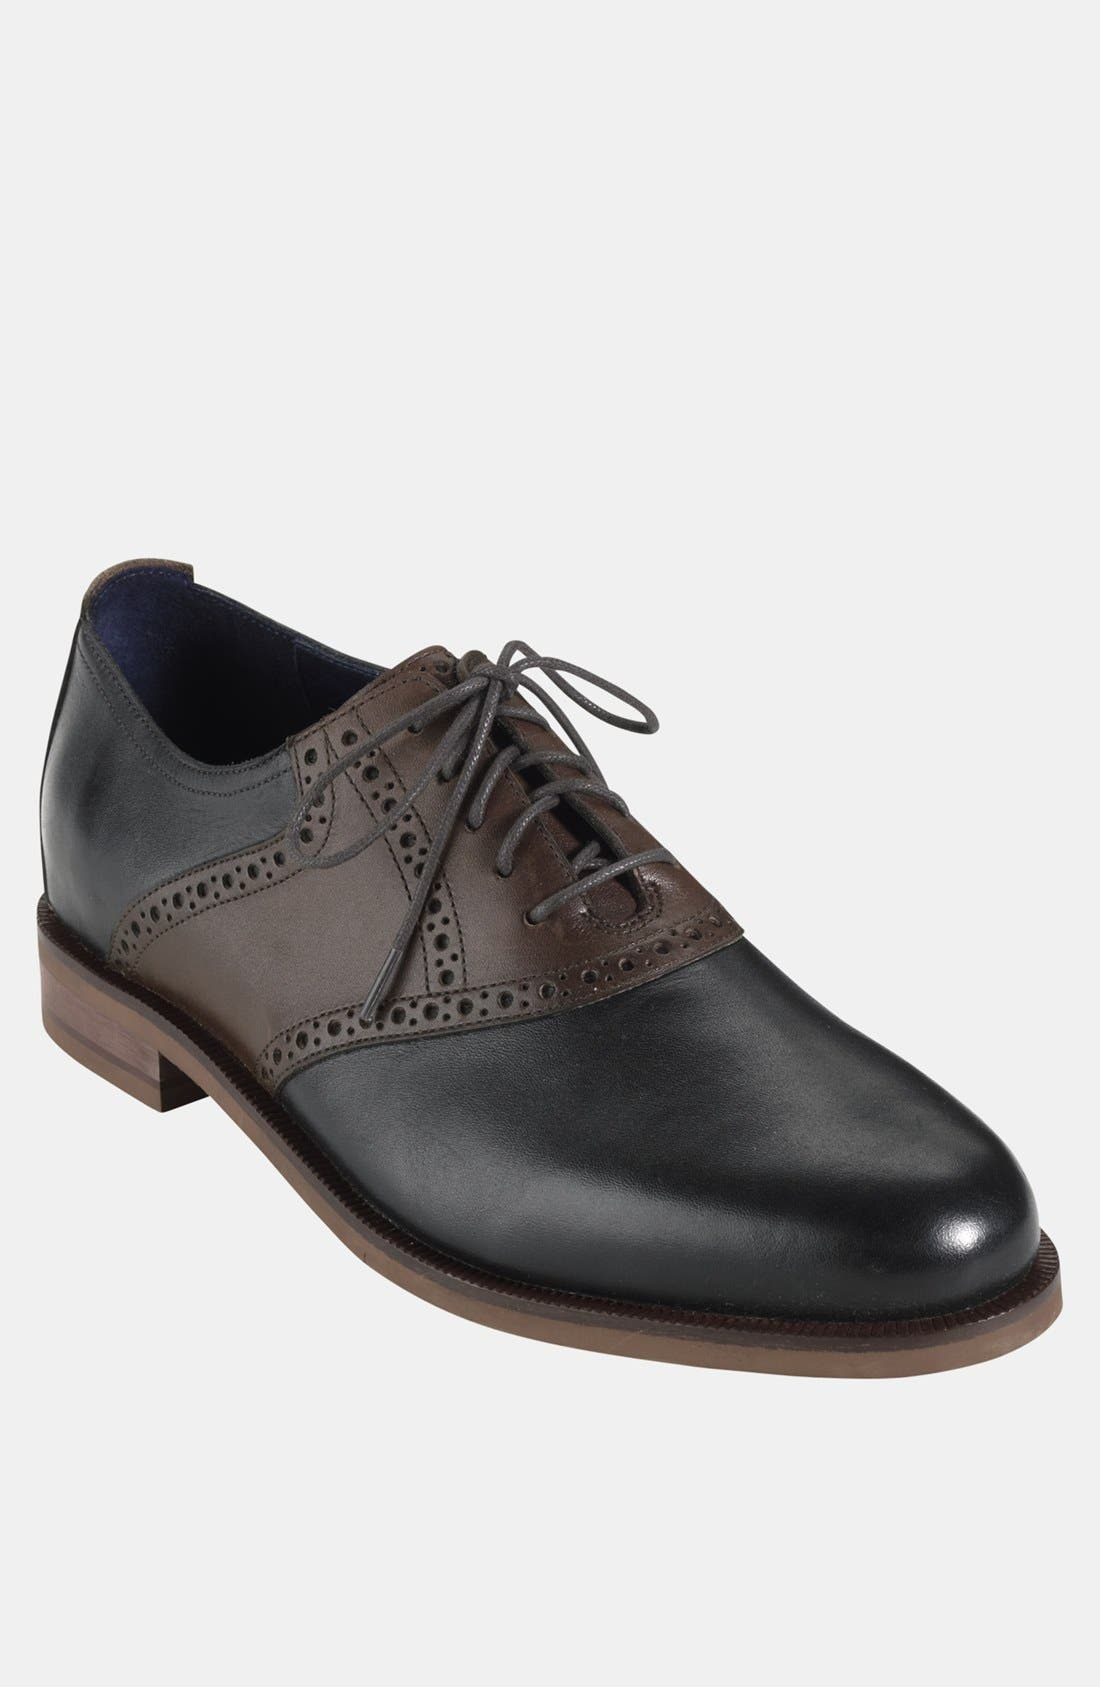 Main Image - Cole Haan 'Carter' Saddle Shoe